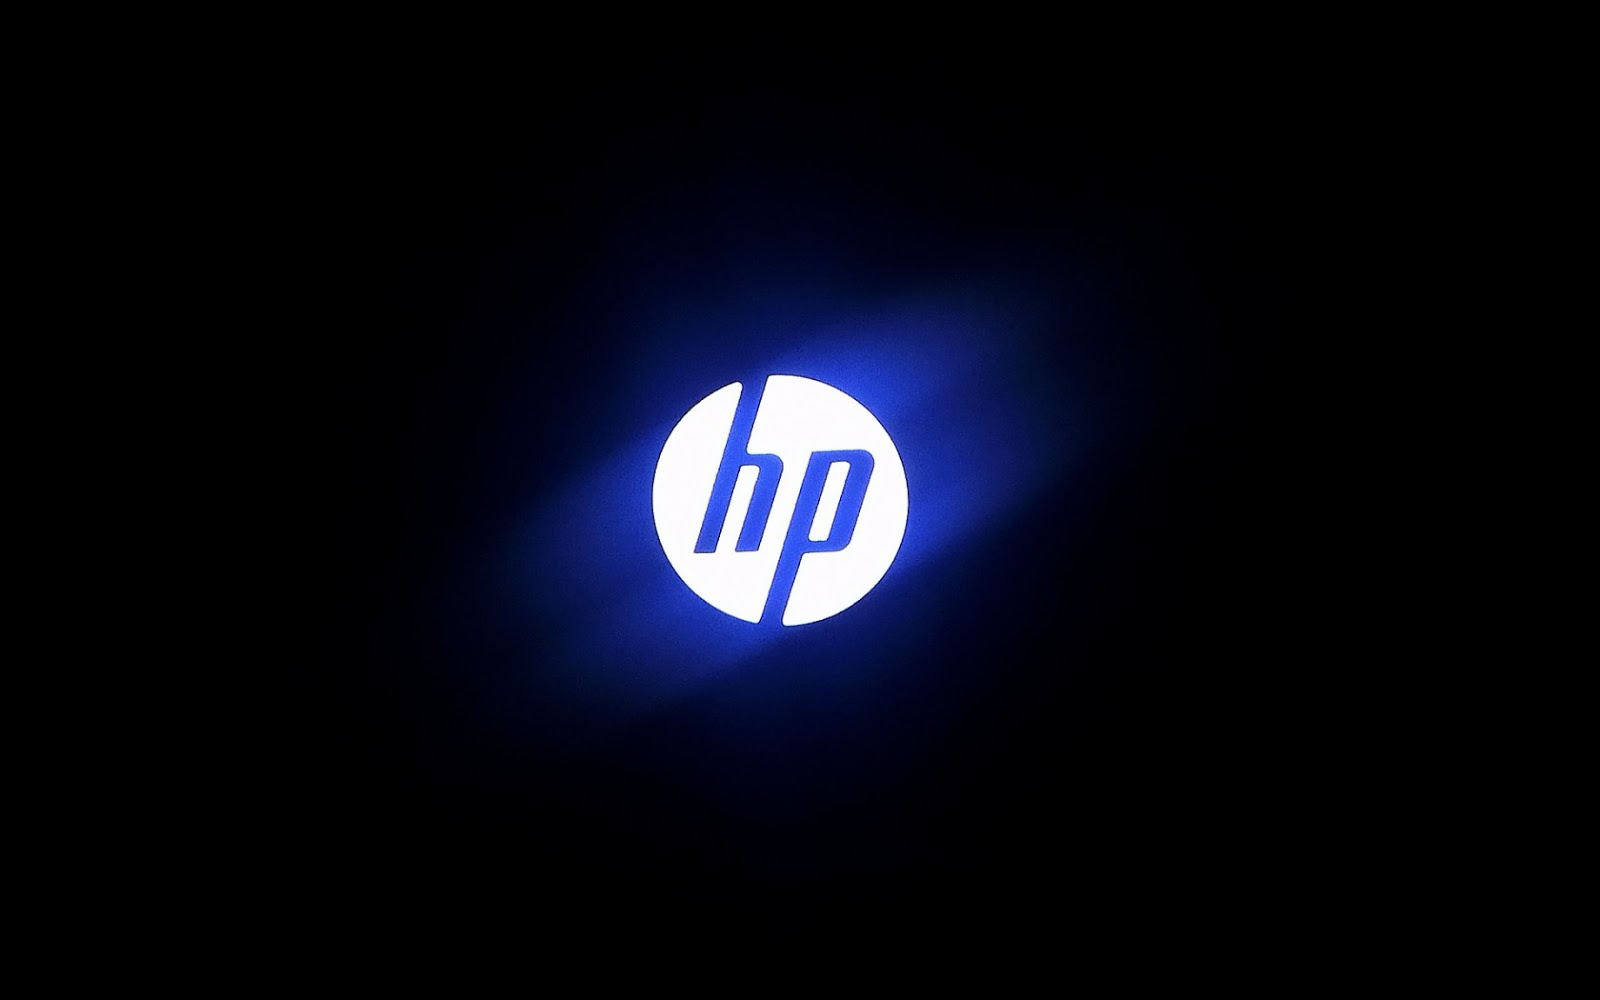 hp wallpapers - photo #2